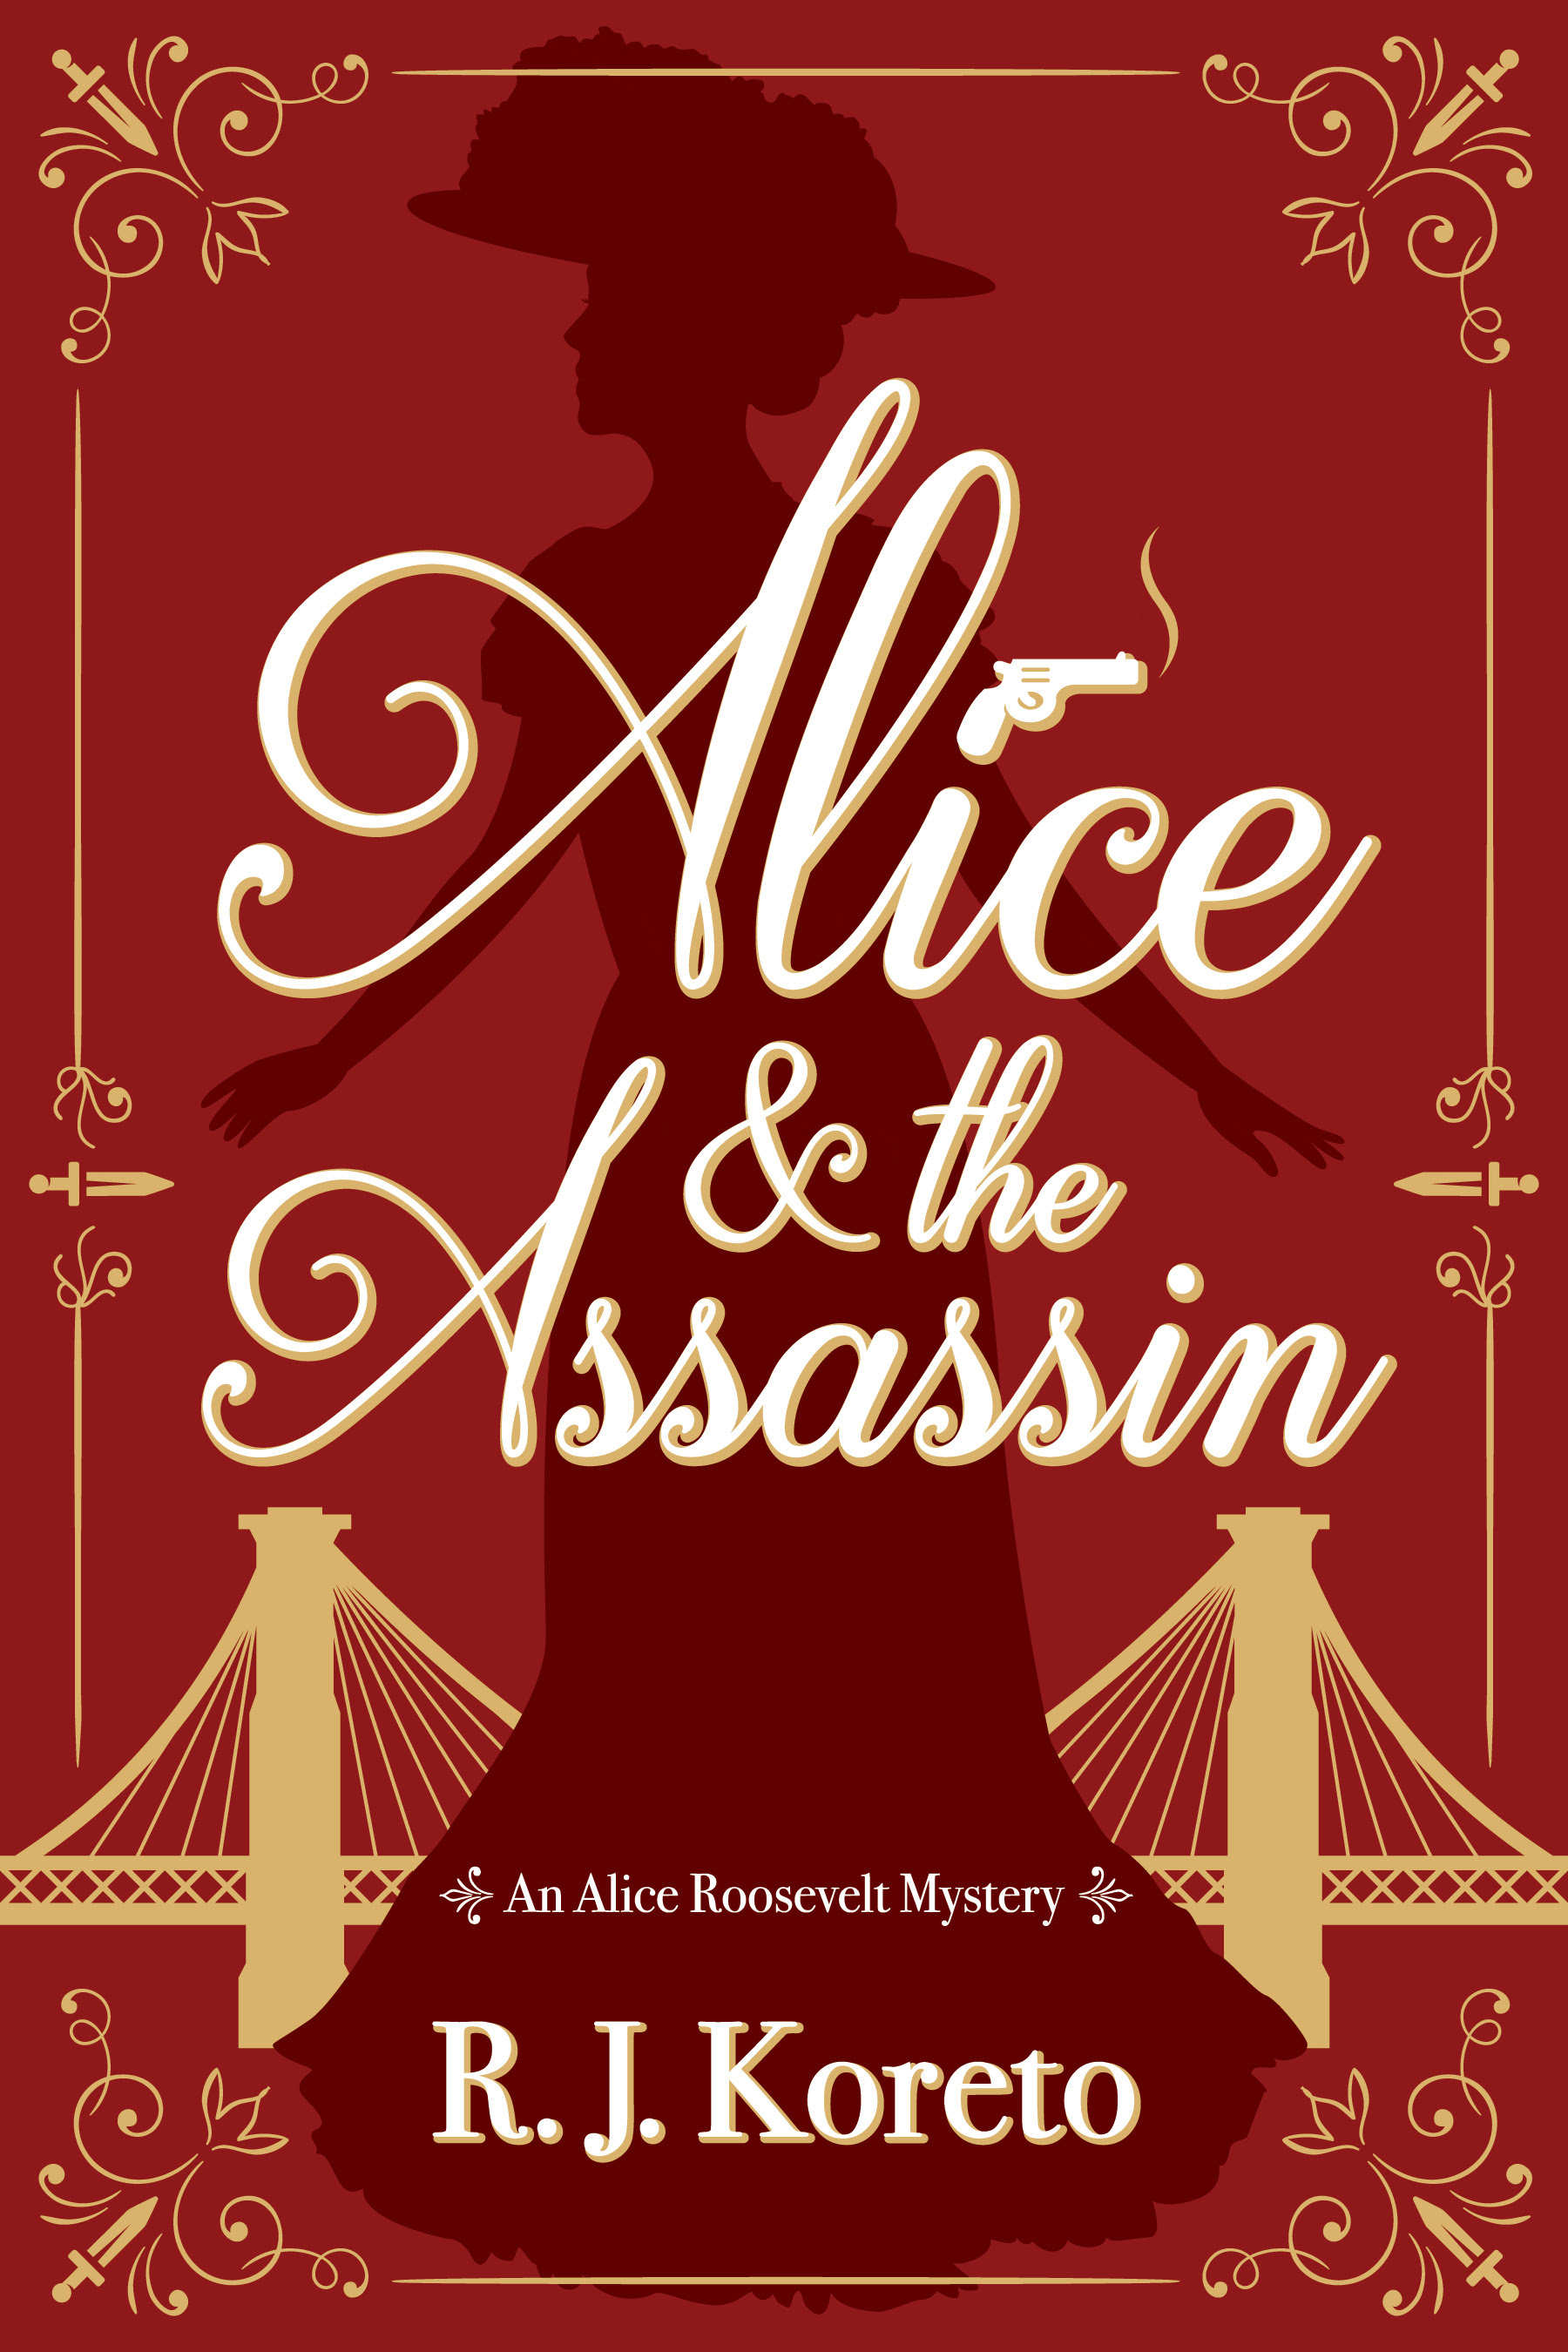 Alice and the Assassin by R.J. Koreto